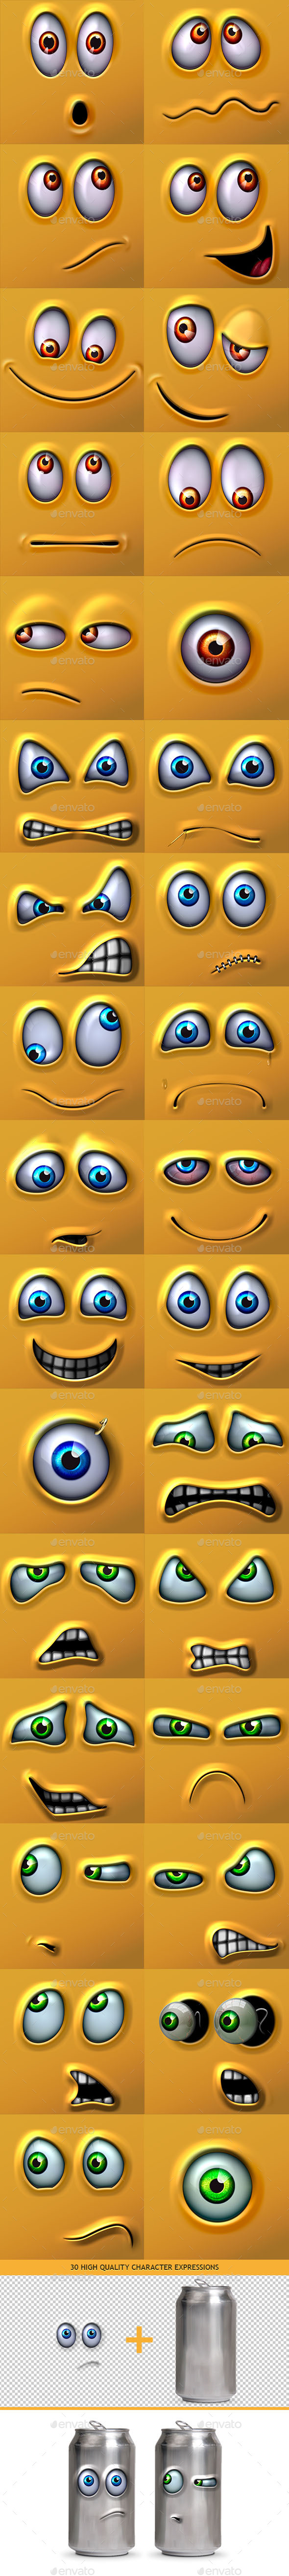 Character Expressions Bundle